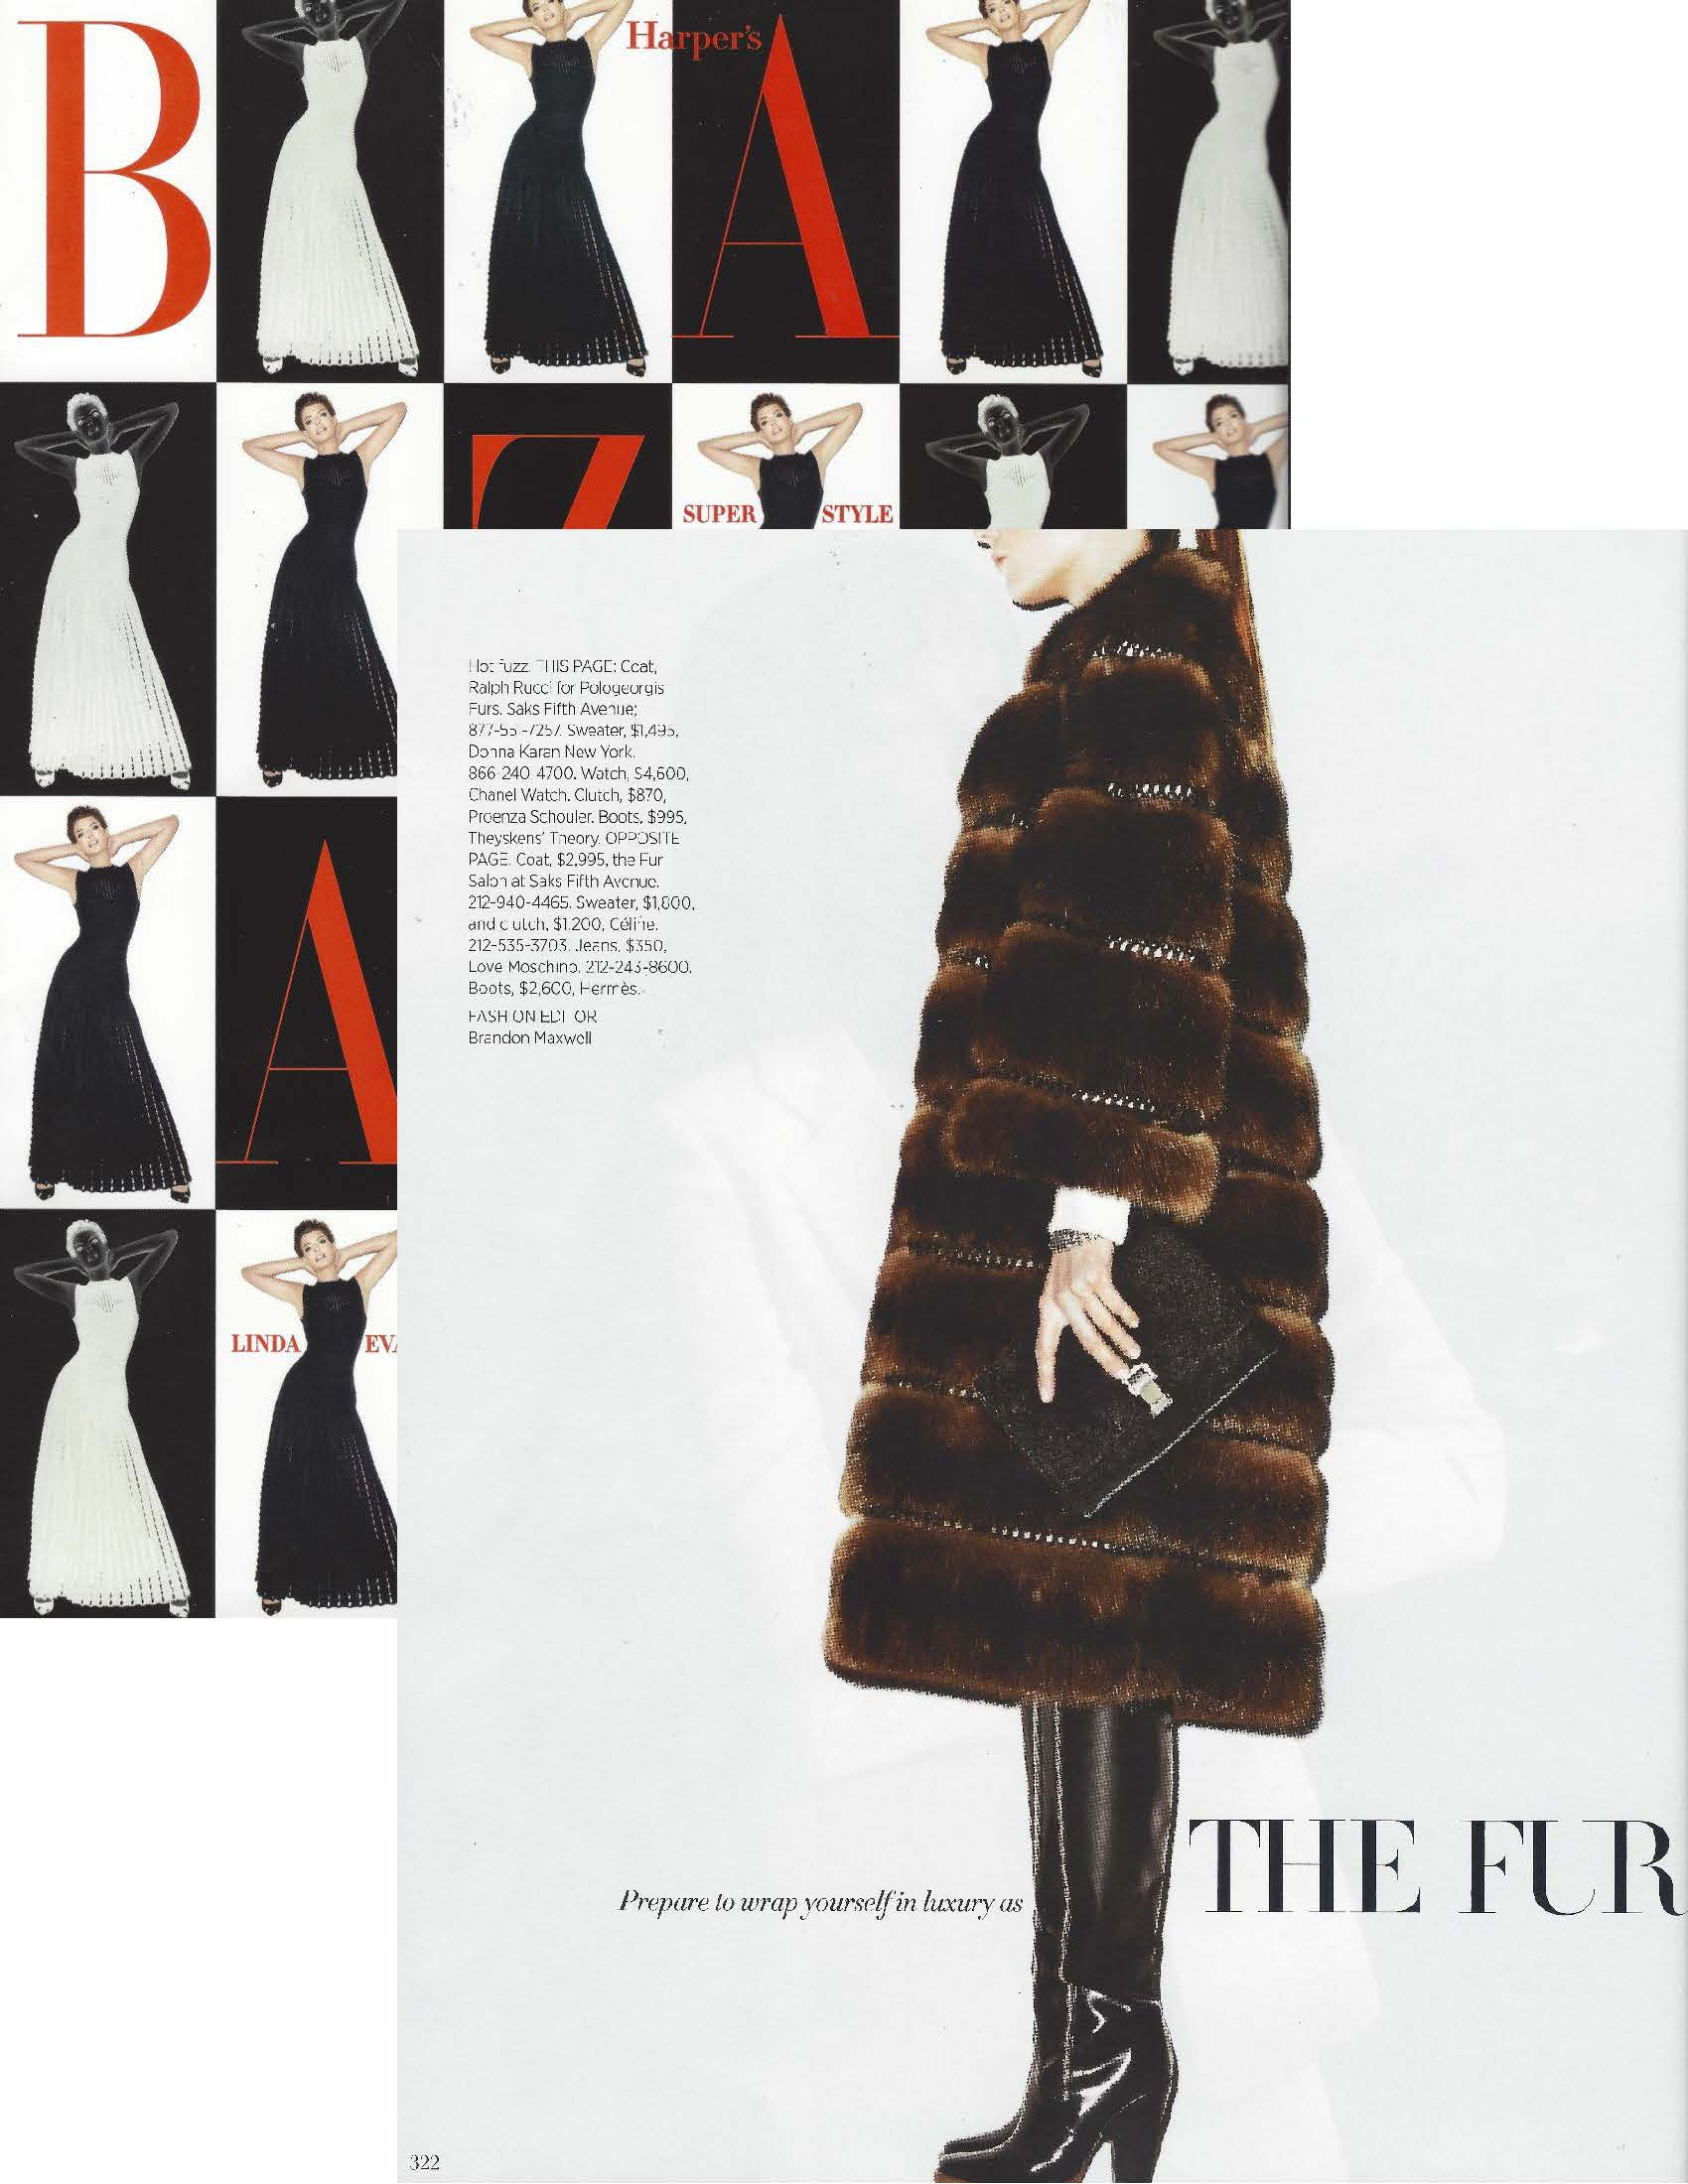 harpers-bazaar-october-2013-ralph-rucci-for-pologeorgis-sable-coat-blackglama-mink-cape-styled-by-brandon-maxwell-photographed-by-jennifer-livingston